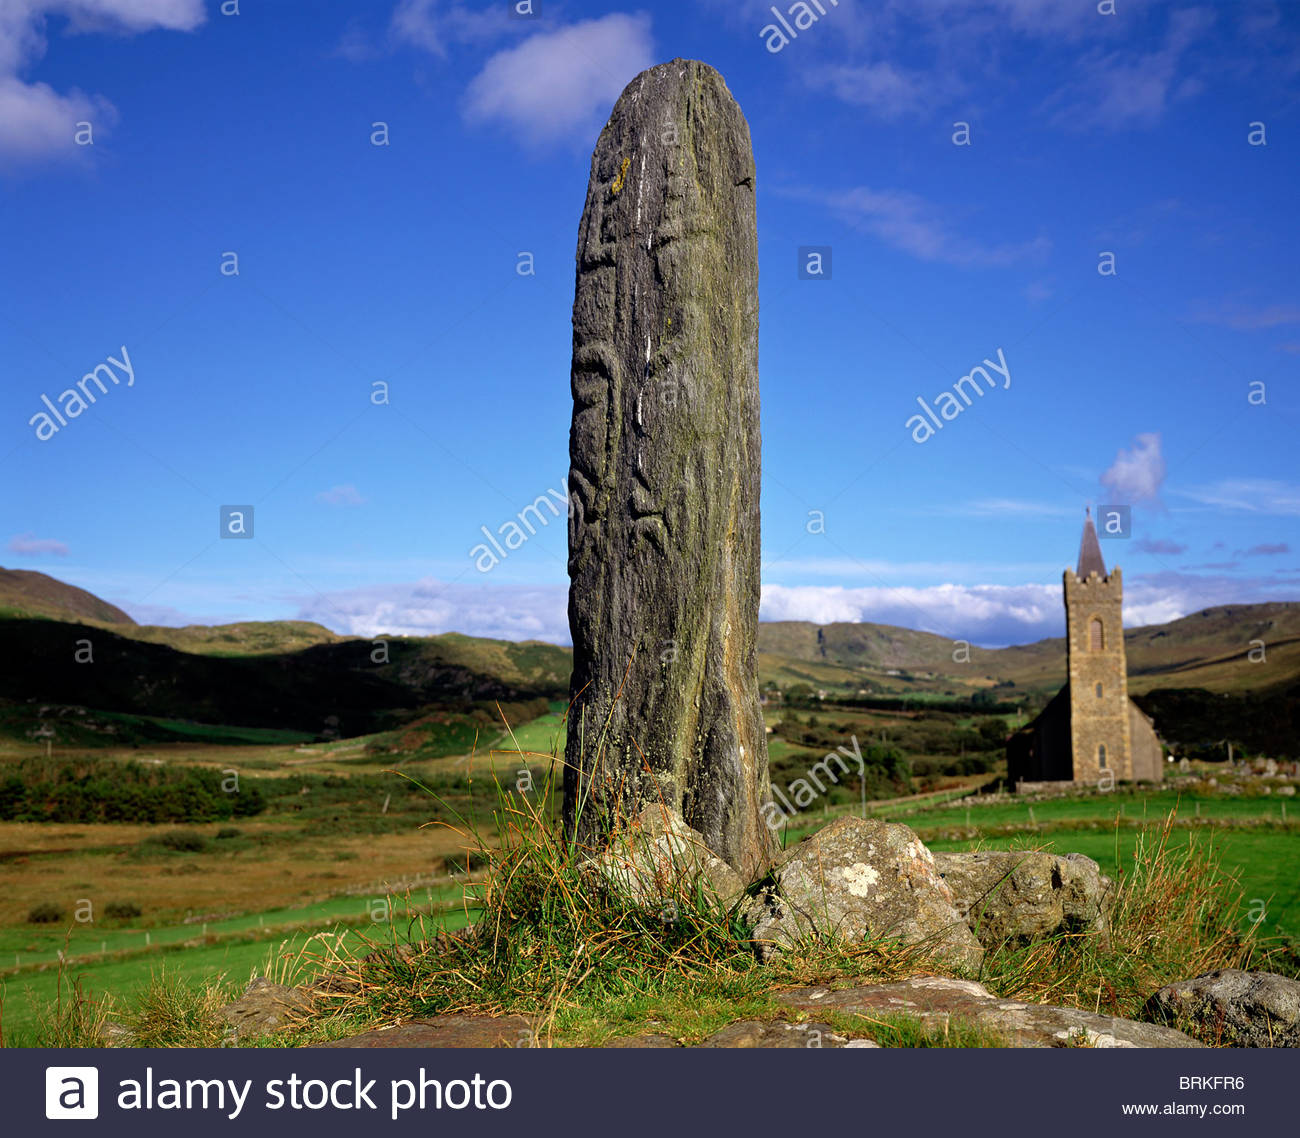 Standing Stone at Glencolumbkille, County Donegal, Ireland - Stock Image